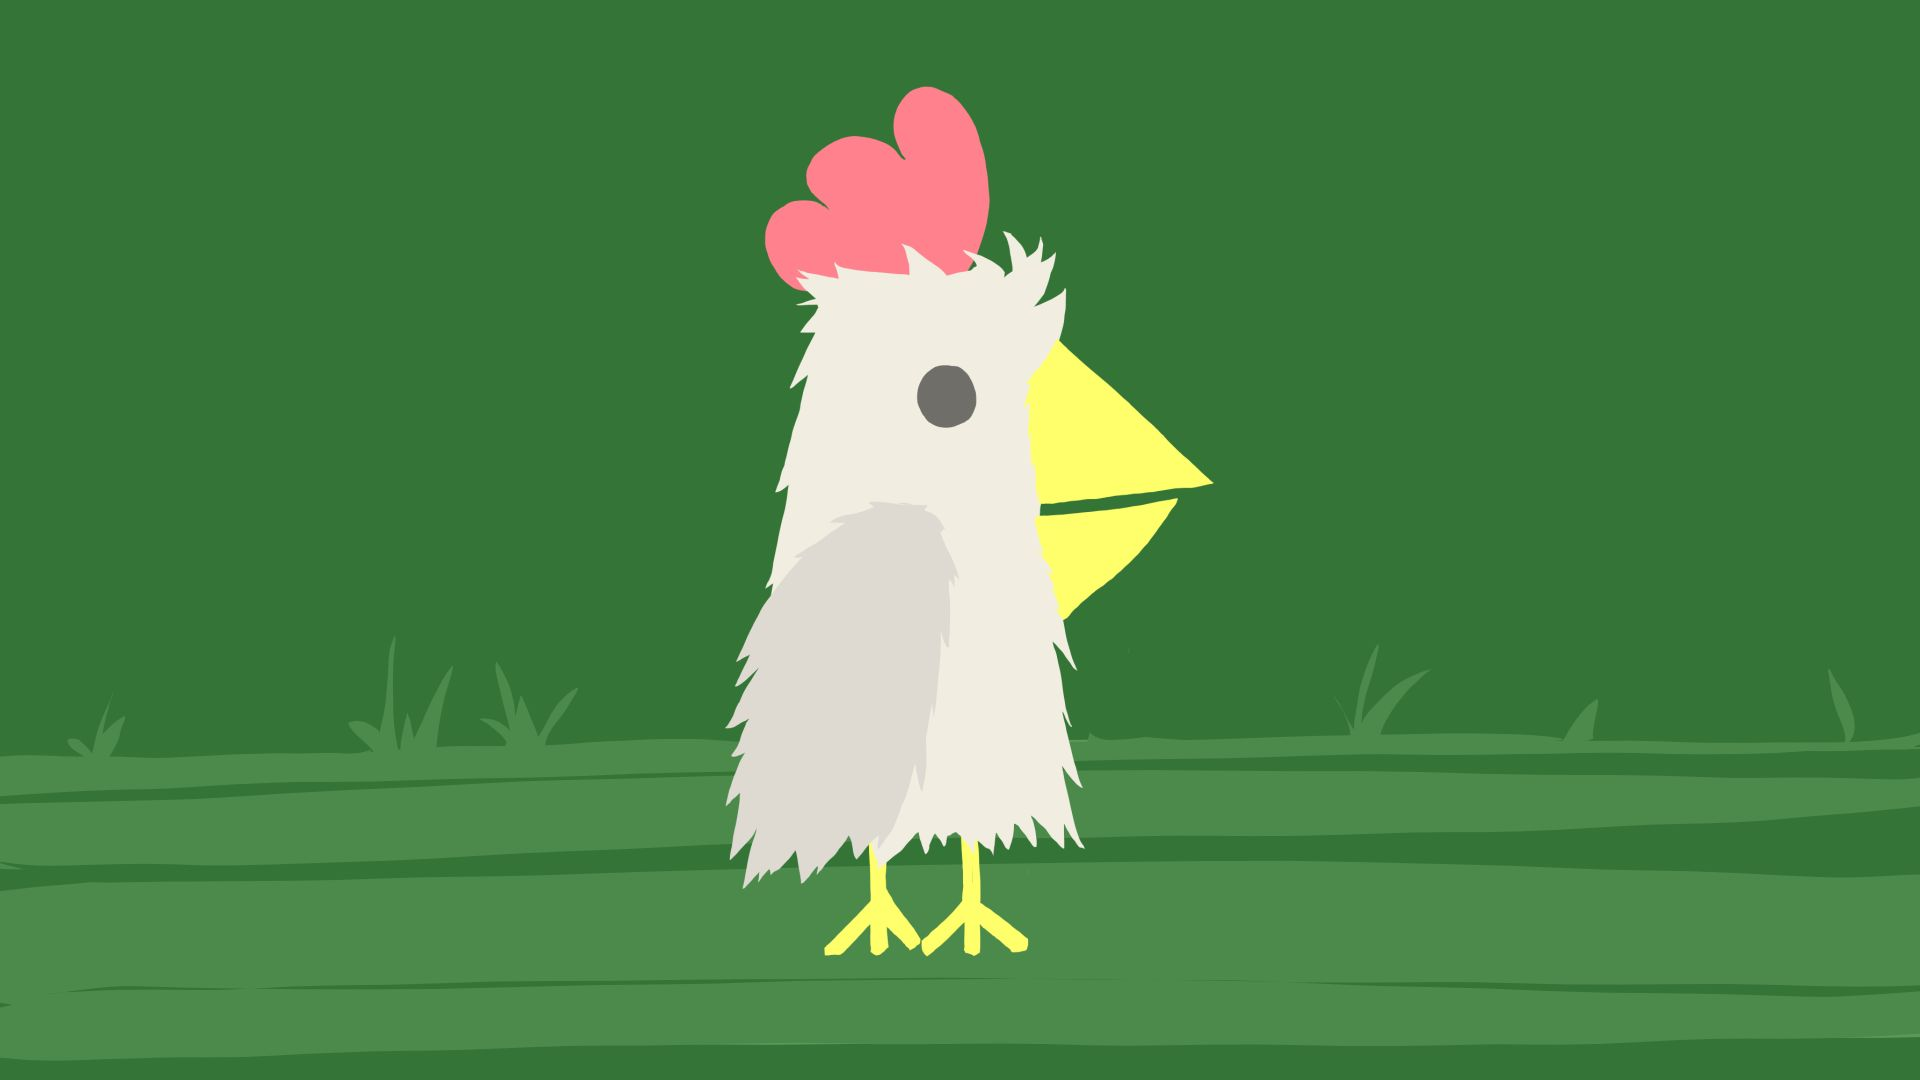 Ultimate Chicken Horse.